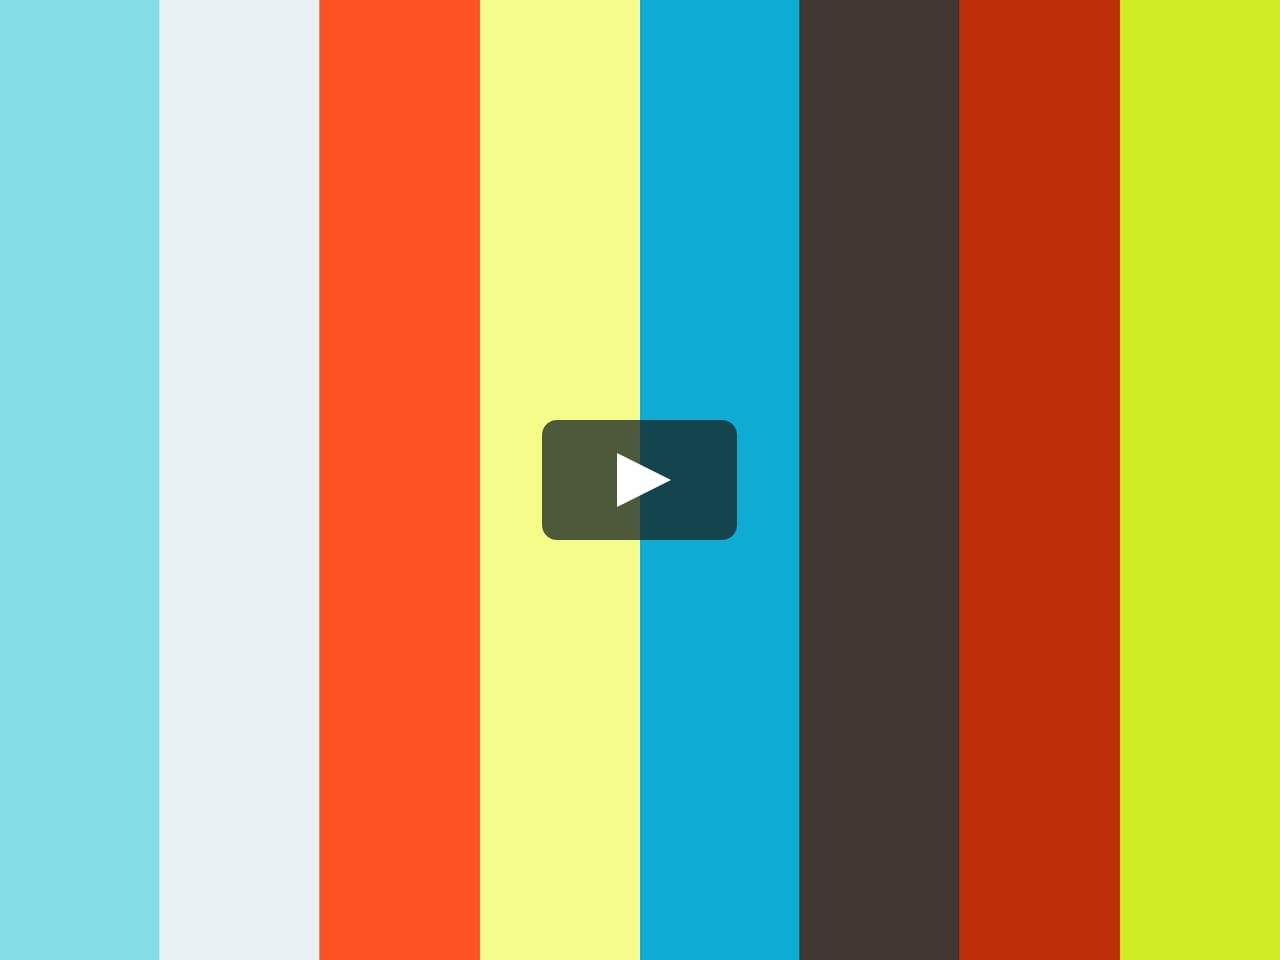 Dating on demand biqle